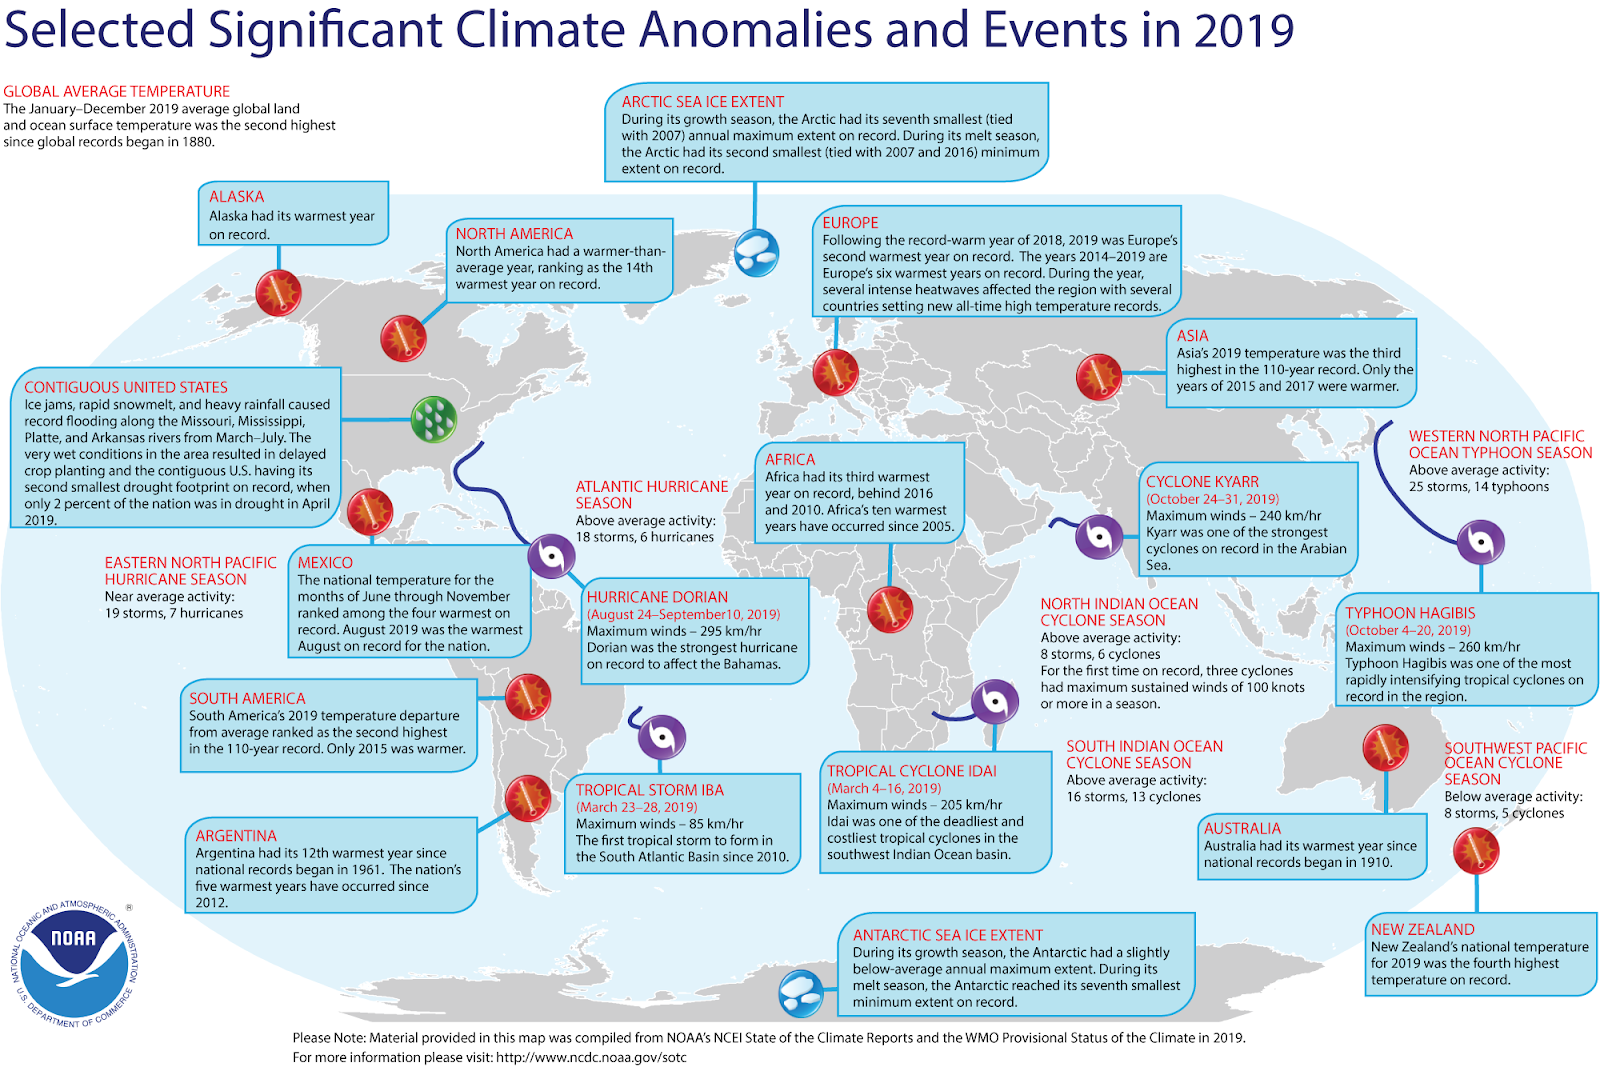 A global map showin selected significant climate anomolies and events in 2019